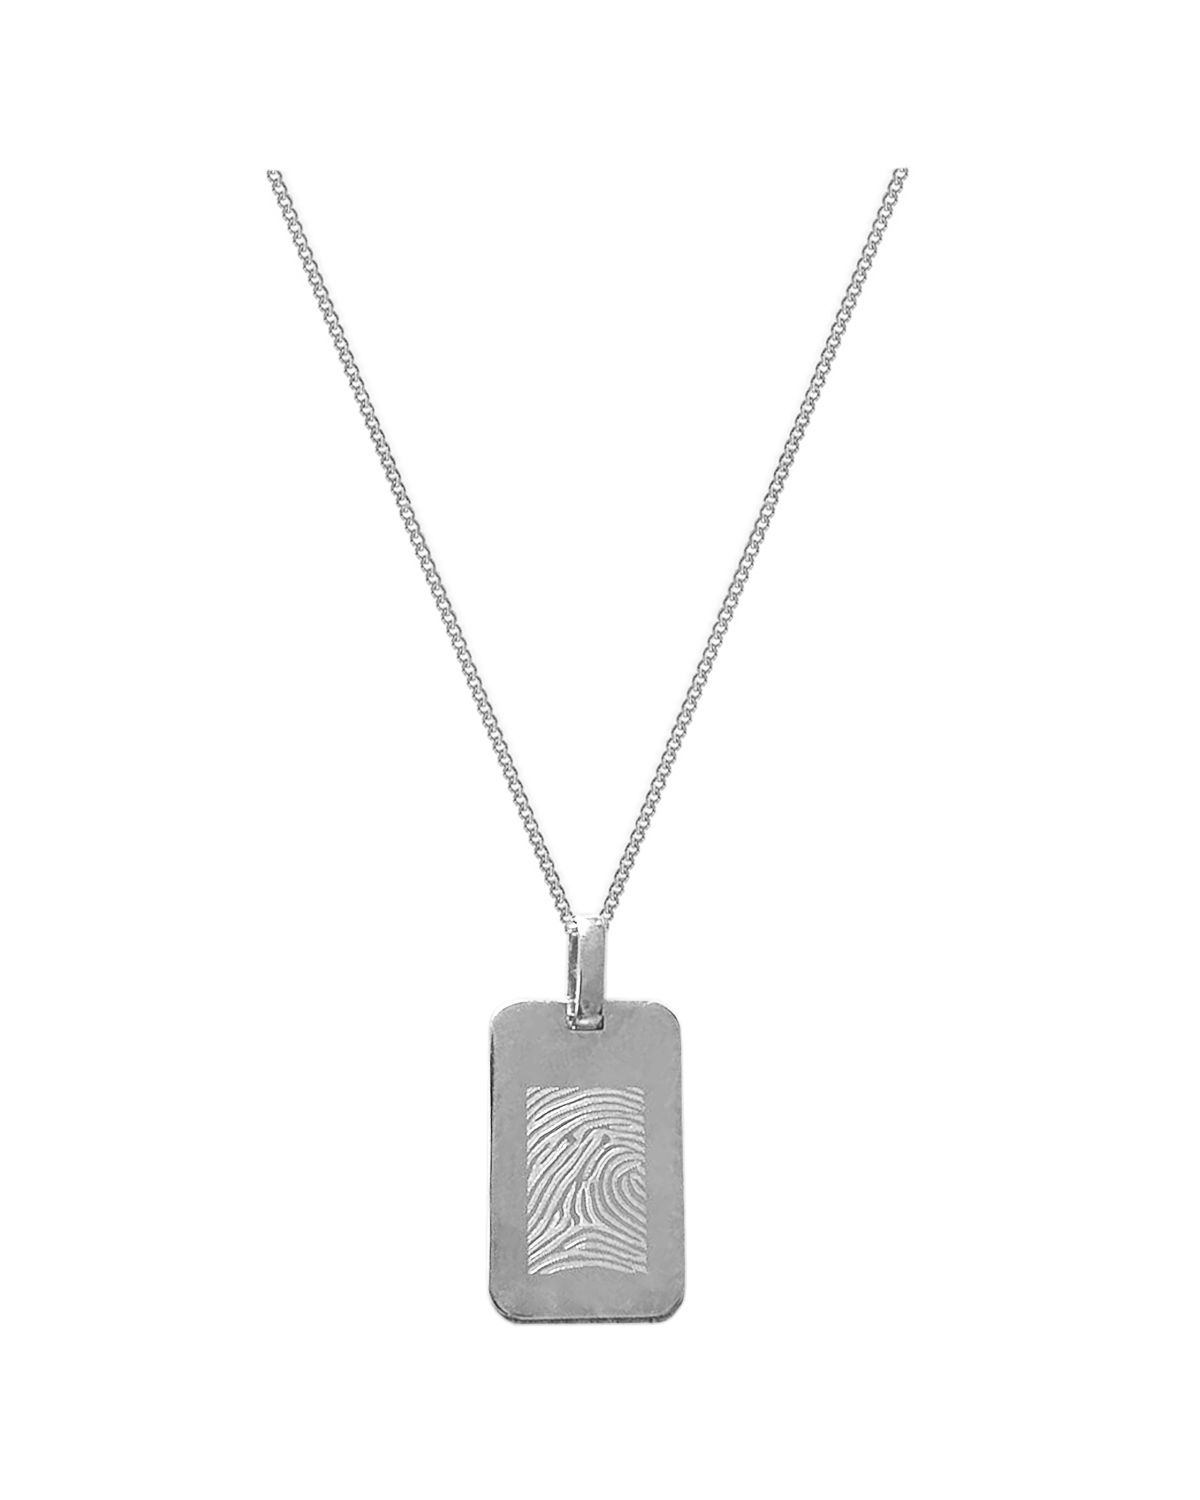 Tag Charm Necklace, silver